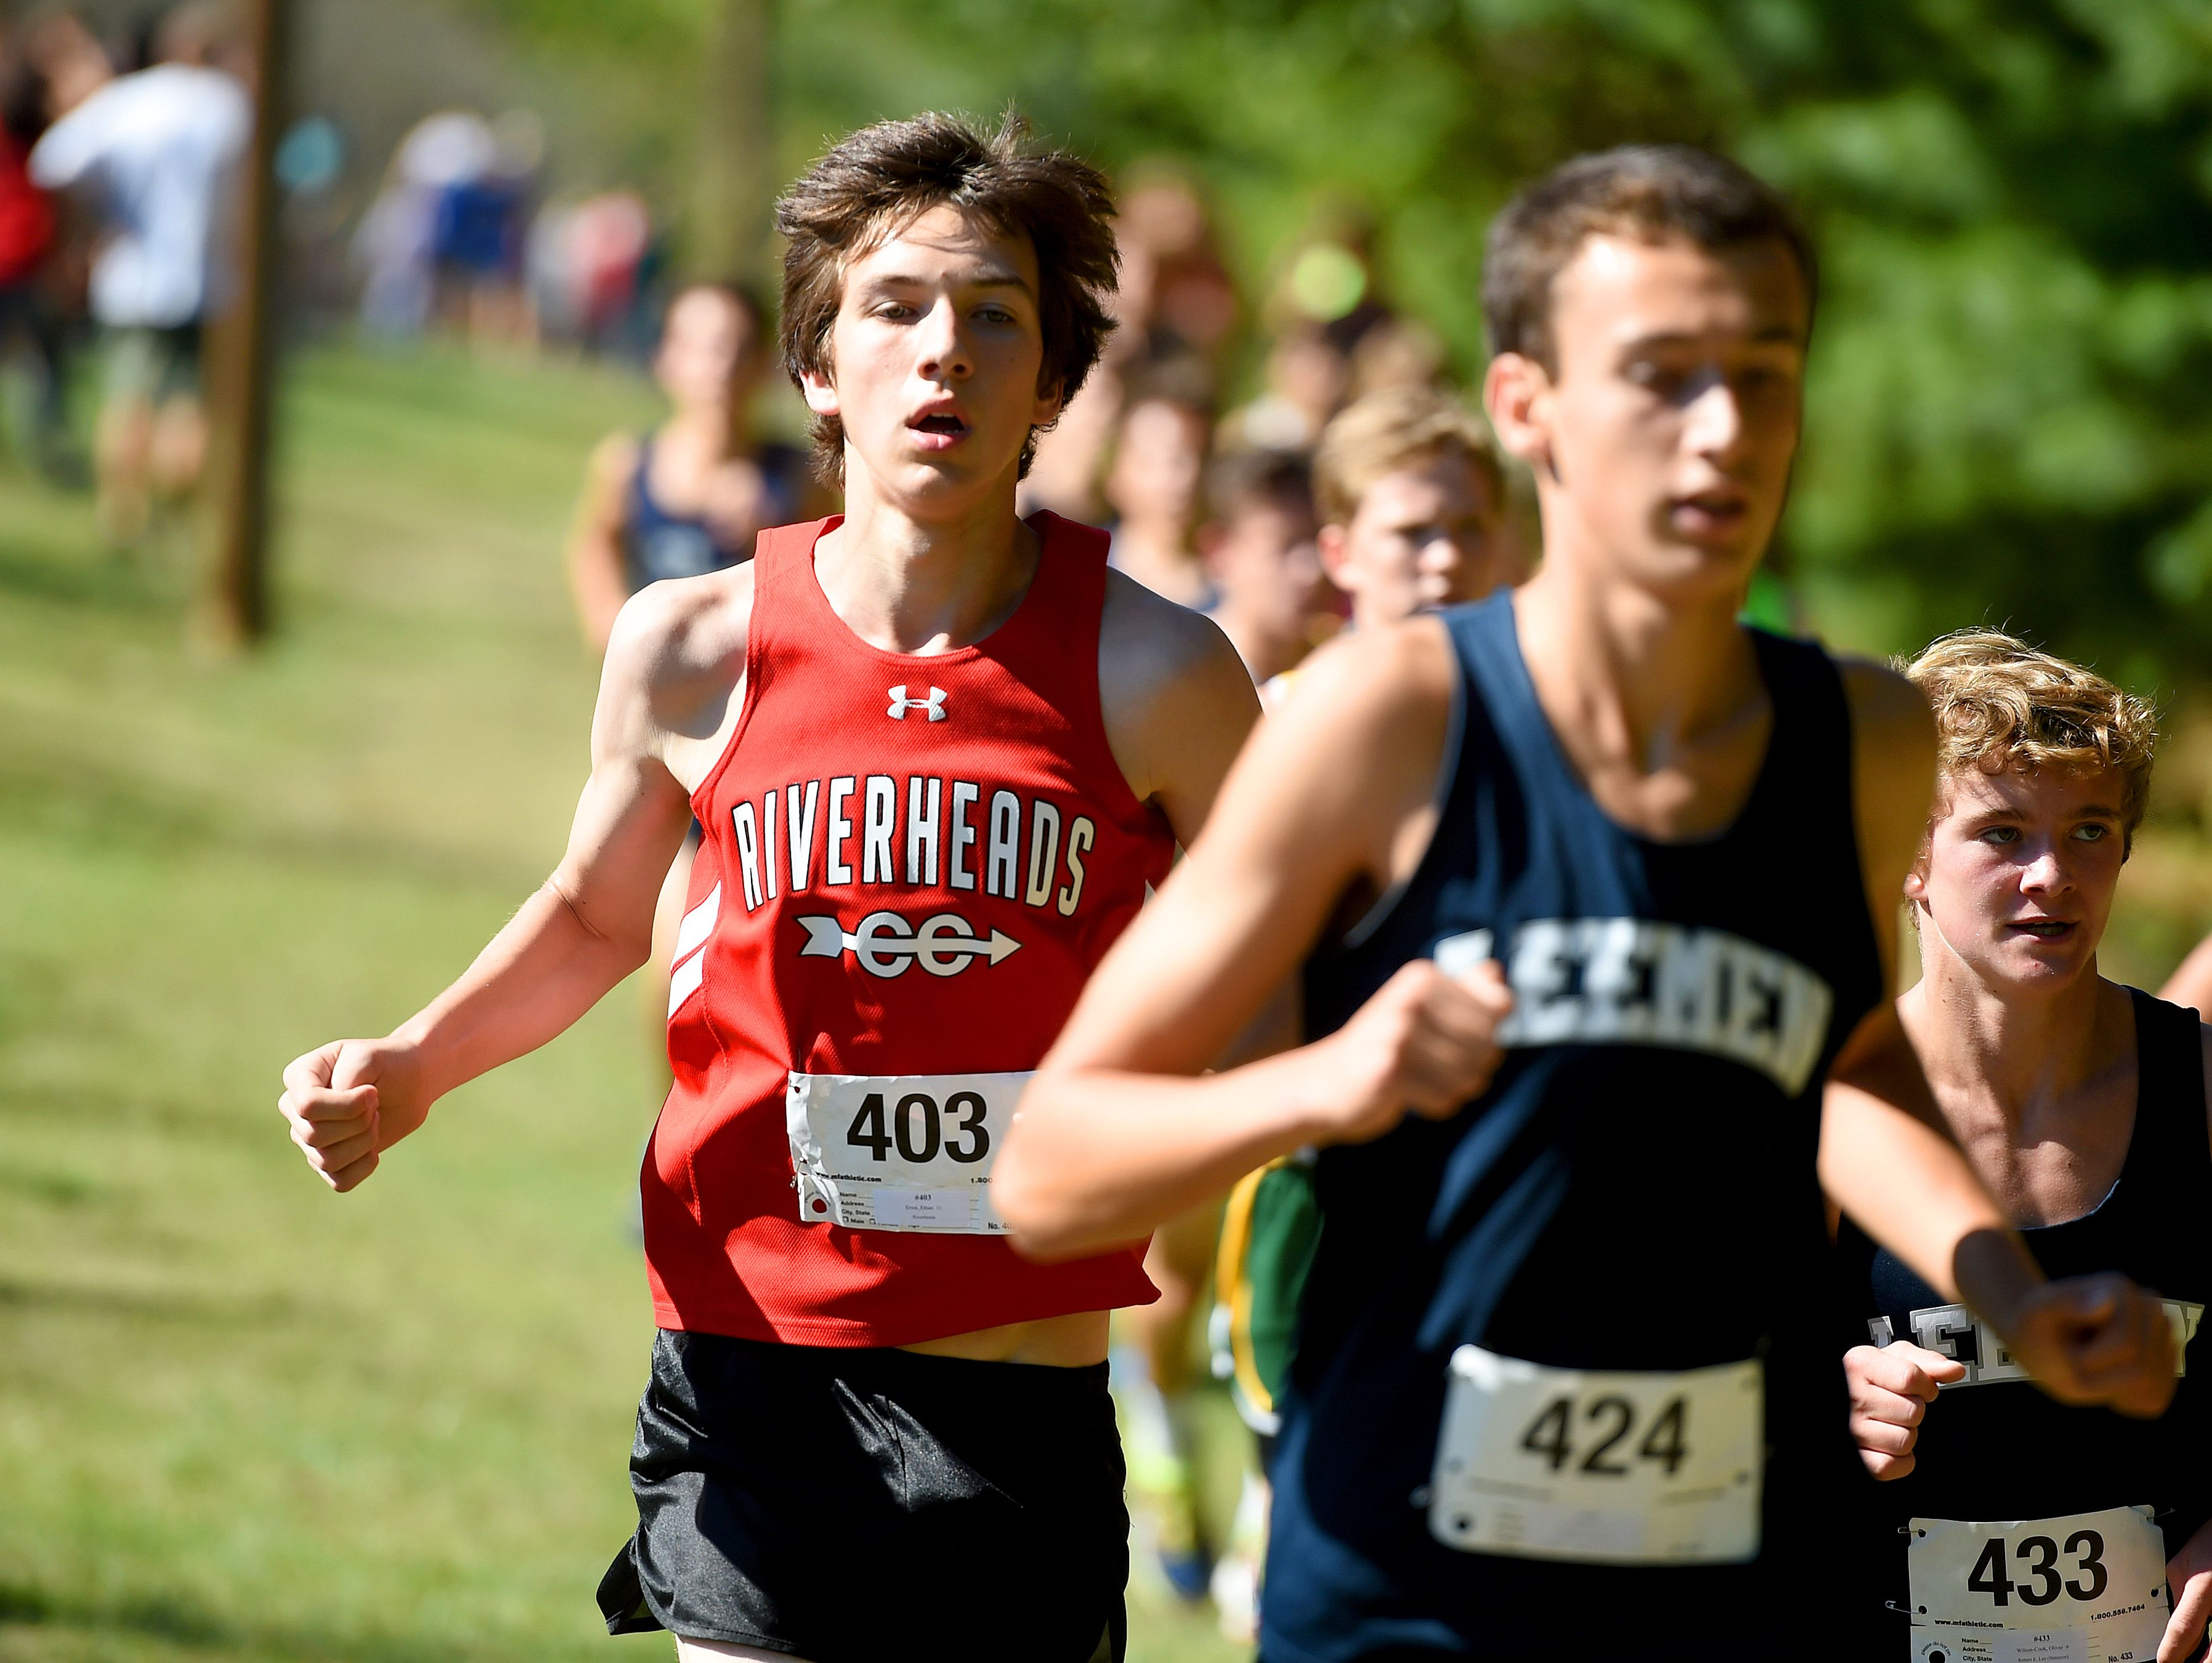 Riverheads' Ethan Ernst competes in the boys' portion of the Augusta County Cross Country Invitational in Fishersville on Saturday, Sept. 18, 2015.